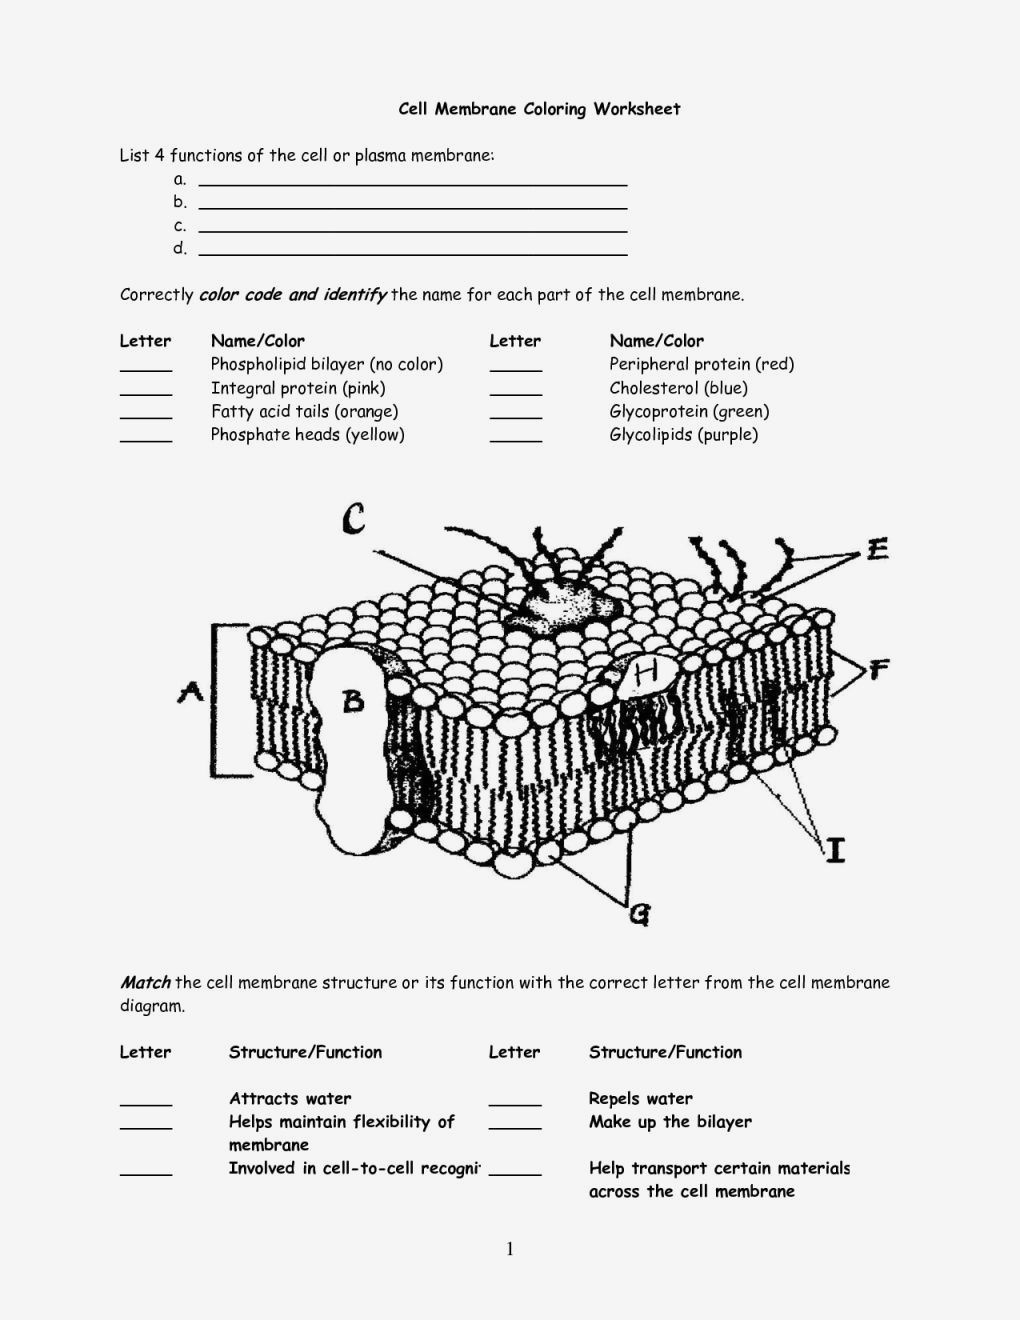 Cell Membrane Structure And Function Worksheet